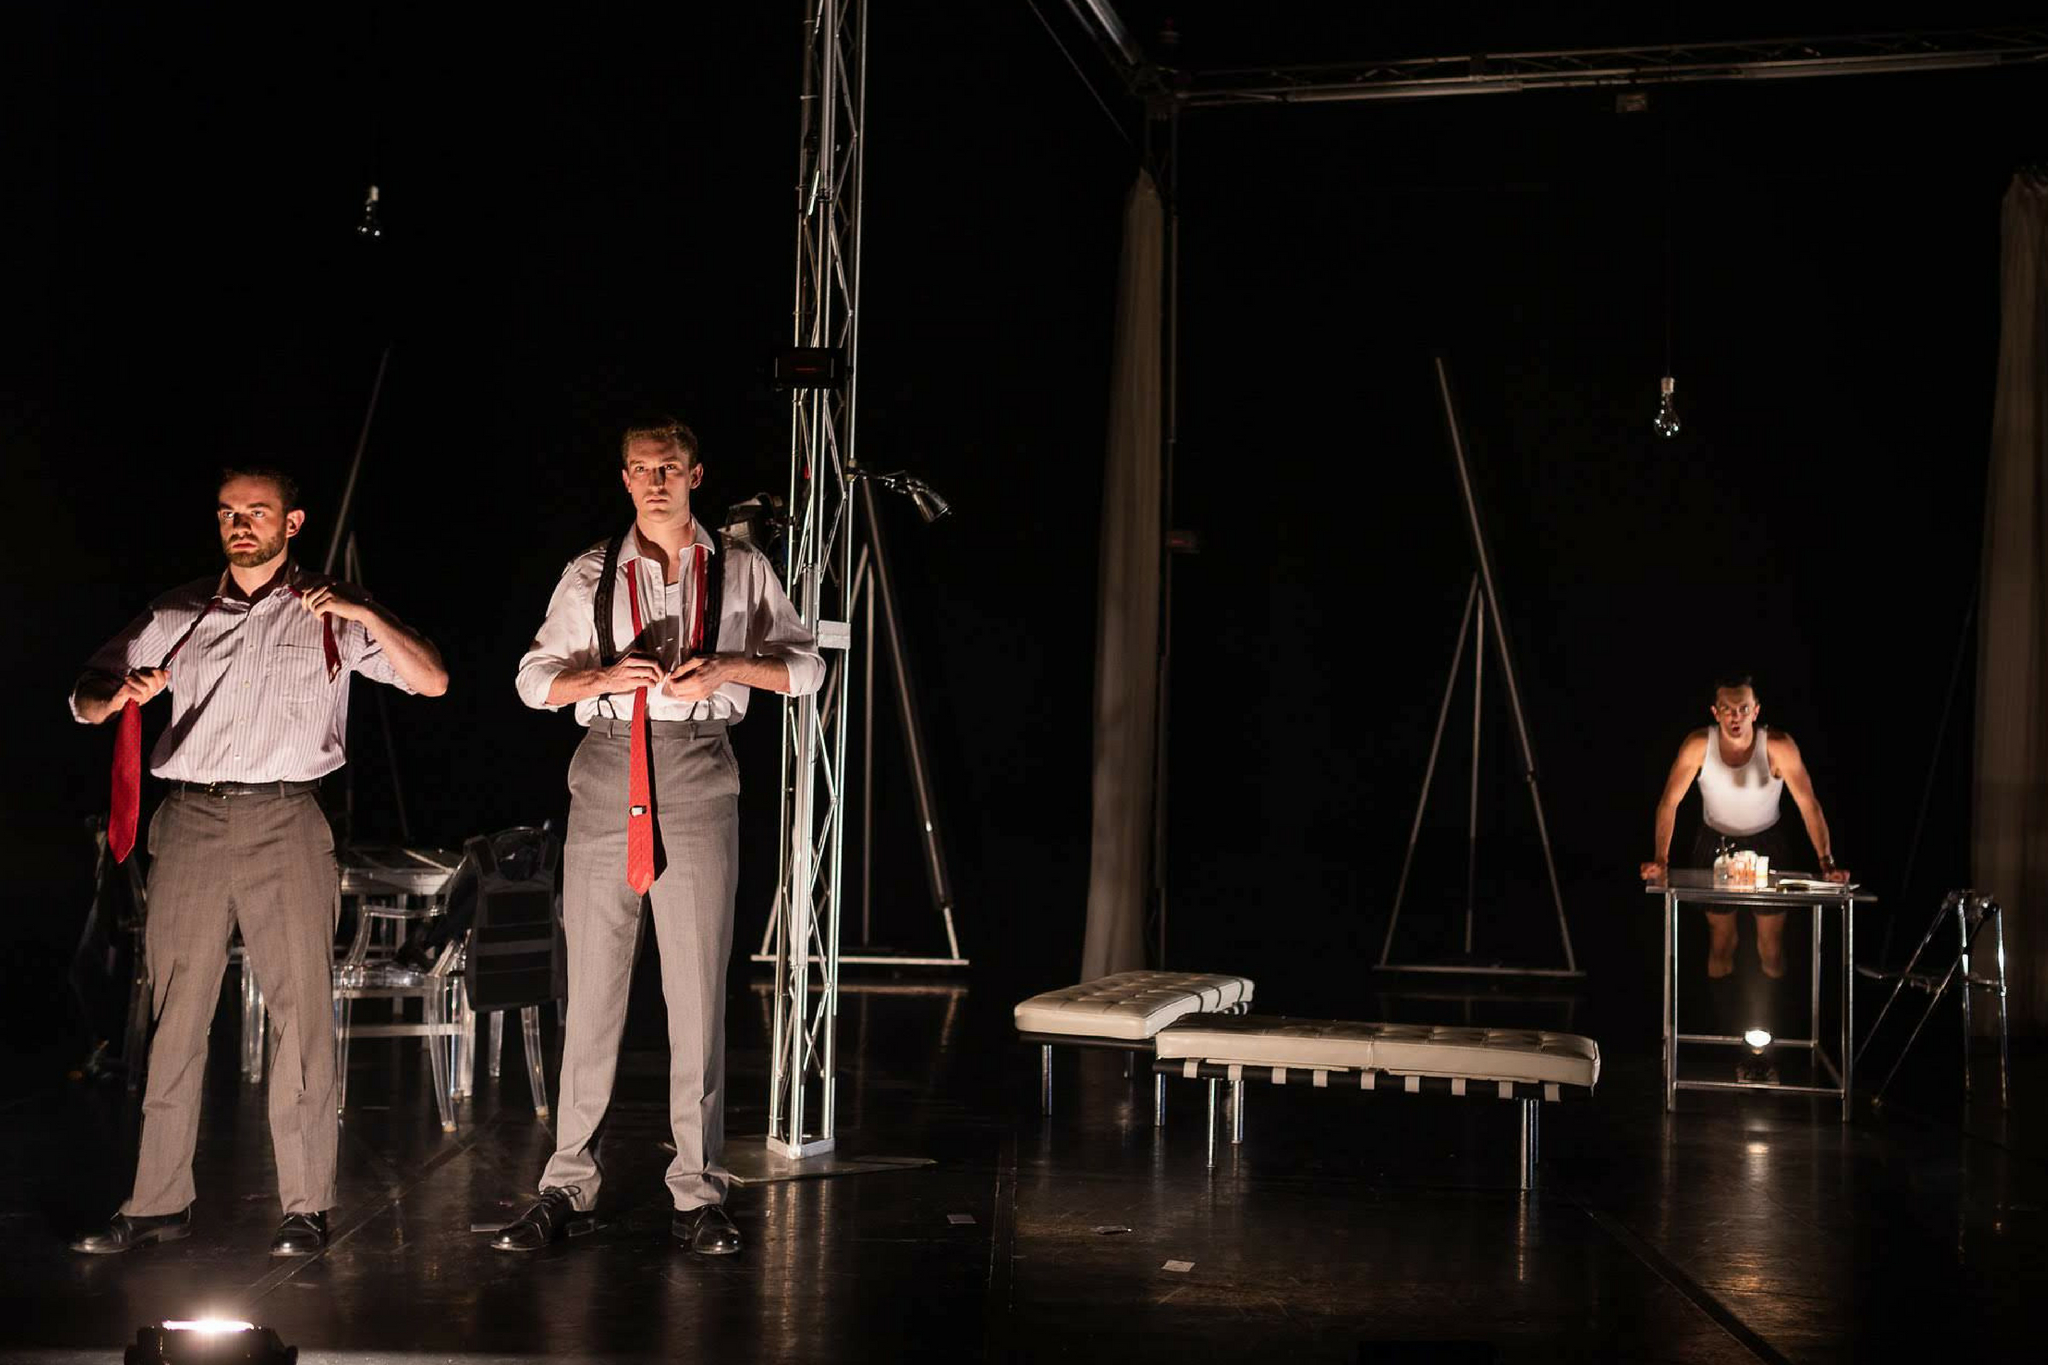 Kody Grasset (Lenox), Ross Barron (Ross), and Billy Saunders, Jr. (Macbeth) in Macbeth, CSC2, 2018-Photo by Nile Hawver